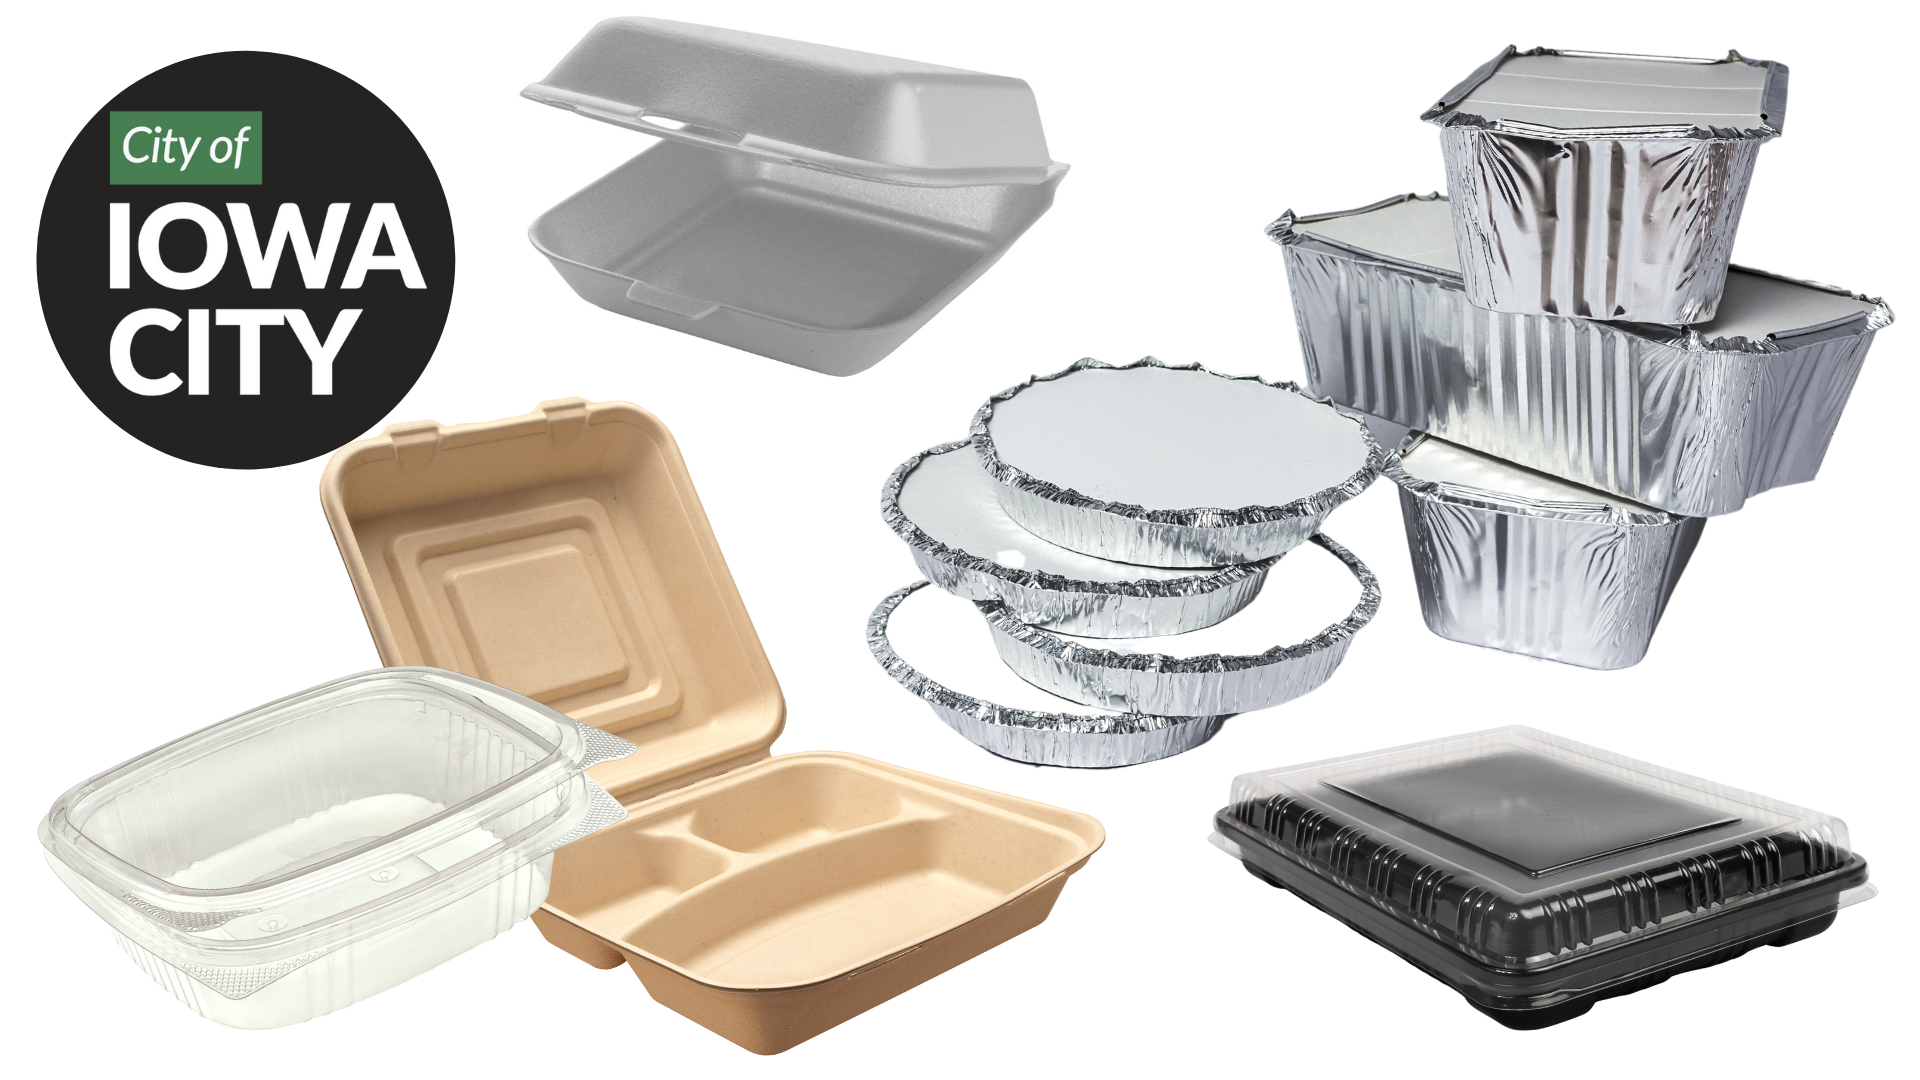 An image with various take-out food containers is shown.